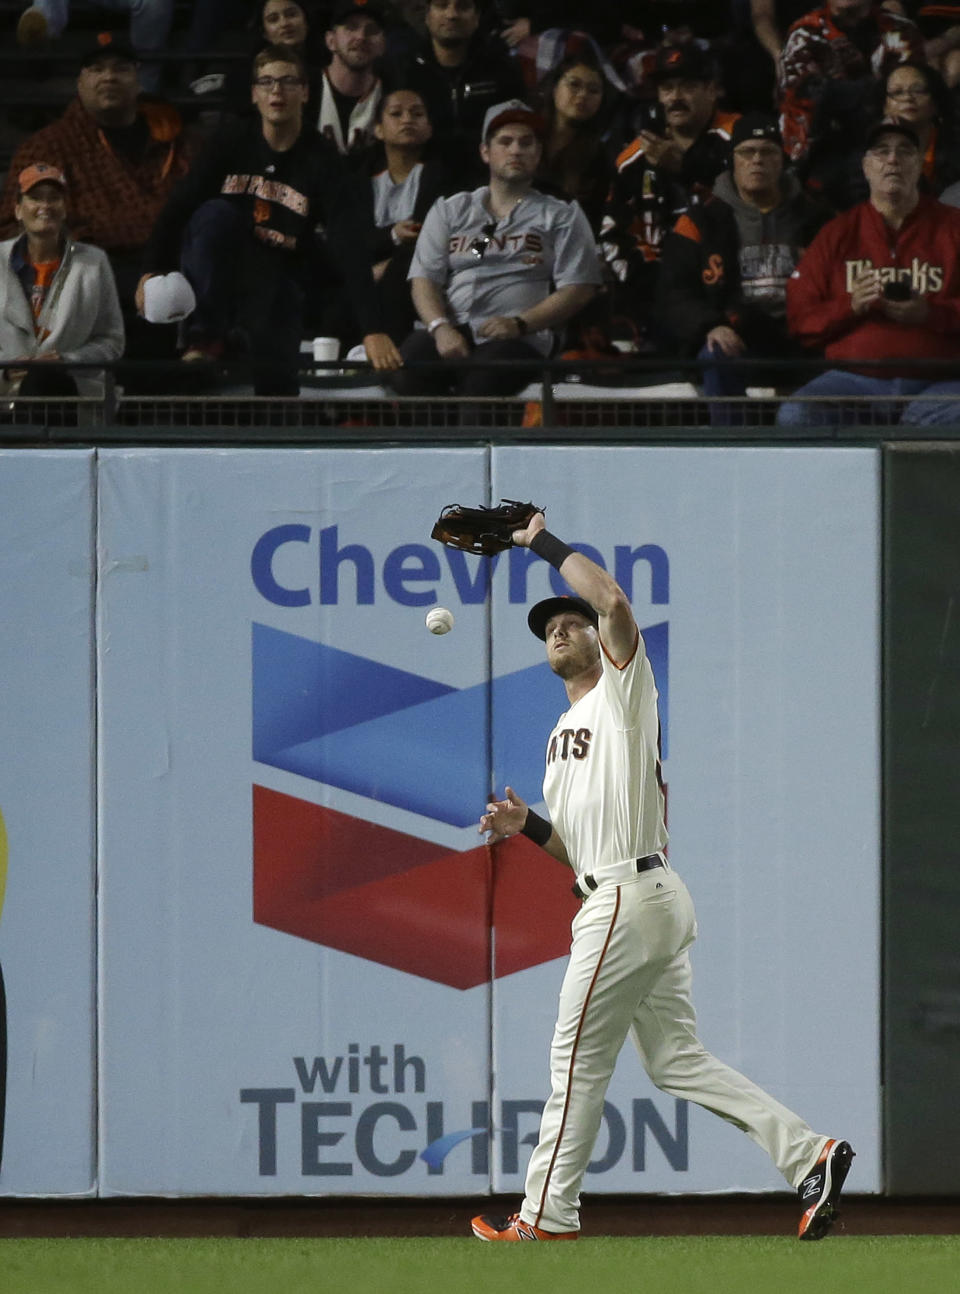 San Francisco Giants left fielder Austin Slater drops a fly ball hit by the Arizona Diamondbacks' Jon Jay in the seventh inning of a baseball game, Tuesday, Aug. 28, 2018, in San Francisco. Slater was given an error and Jay was safe at third base on the play. (AP Photo/Eric Risberg)